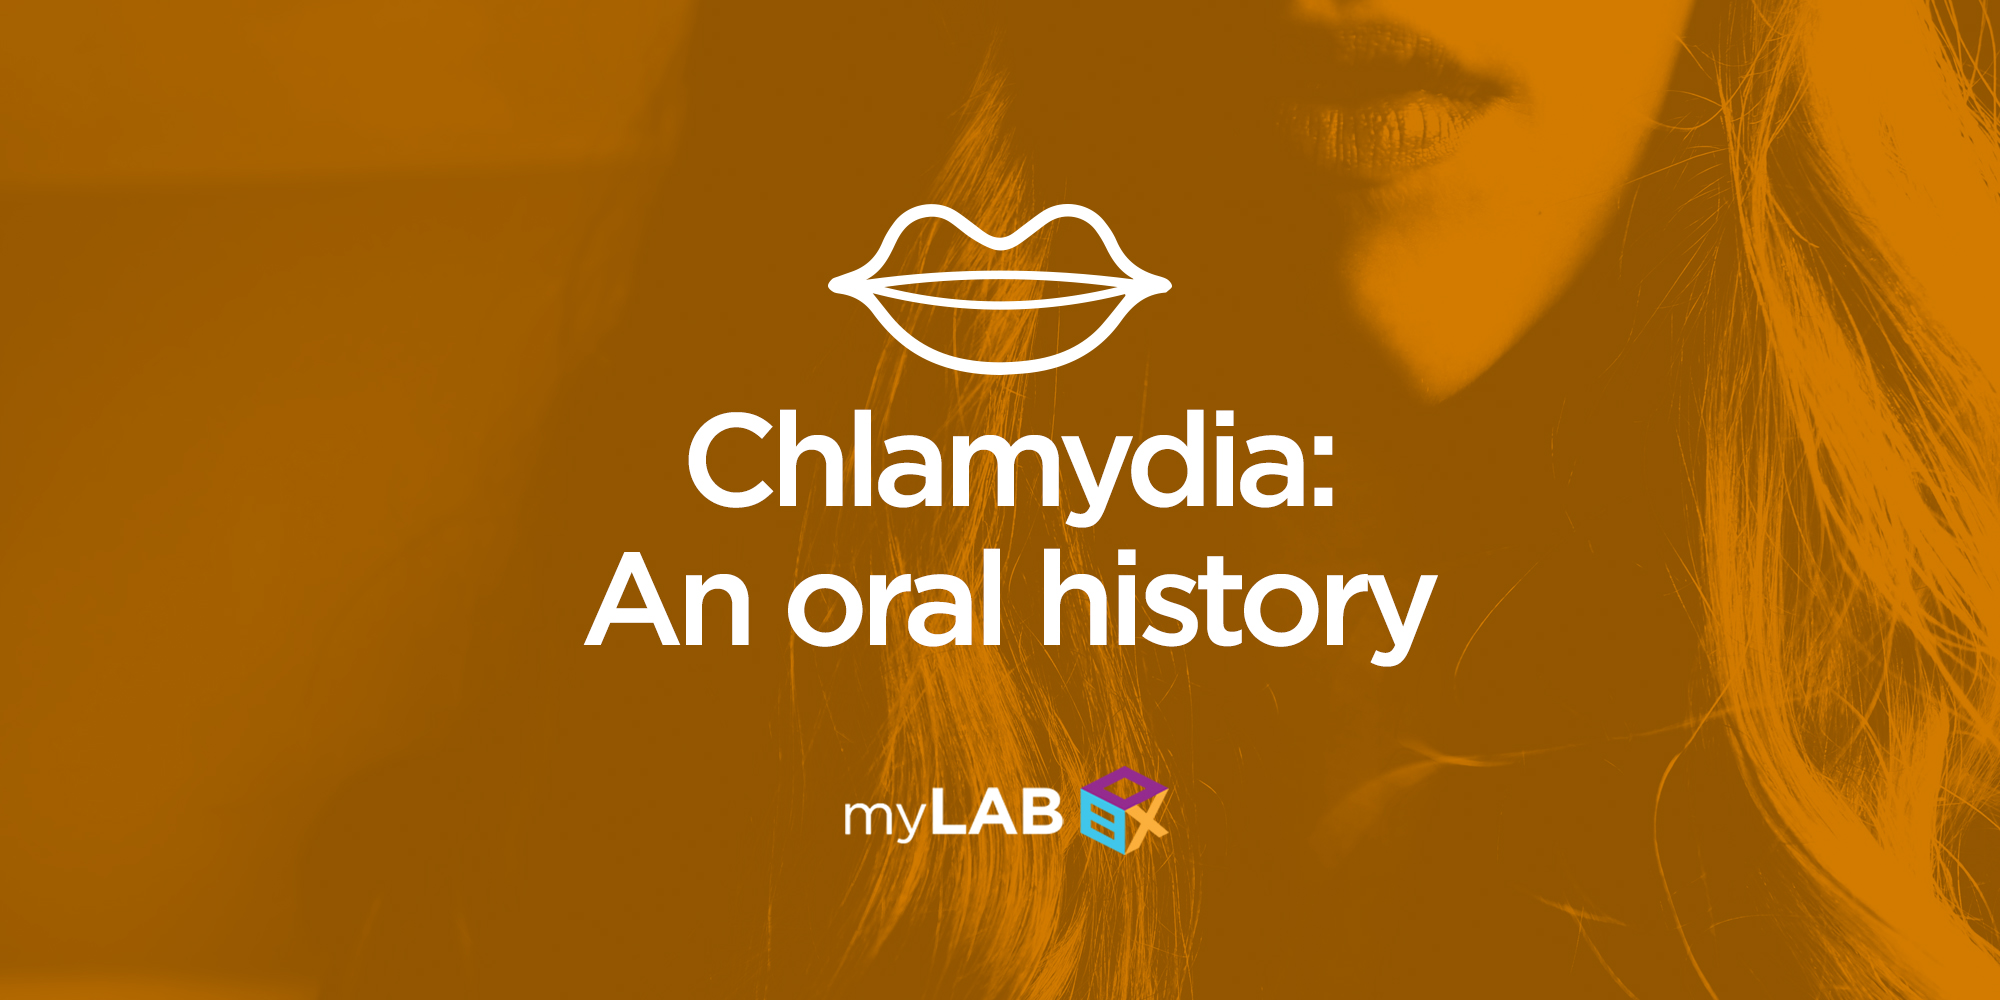 Chlamydia: An Oral History